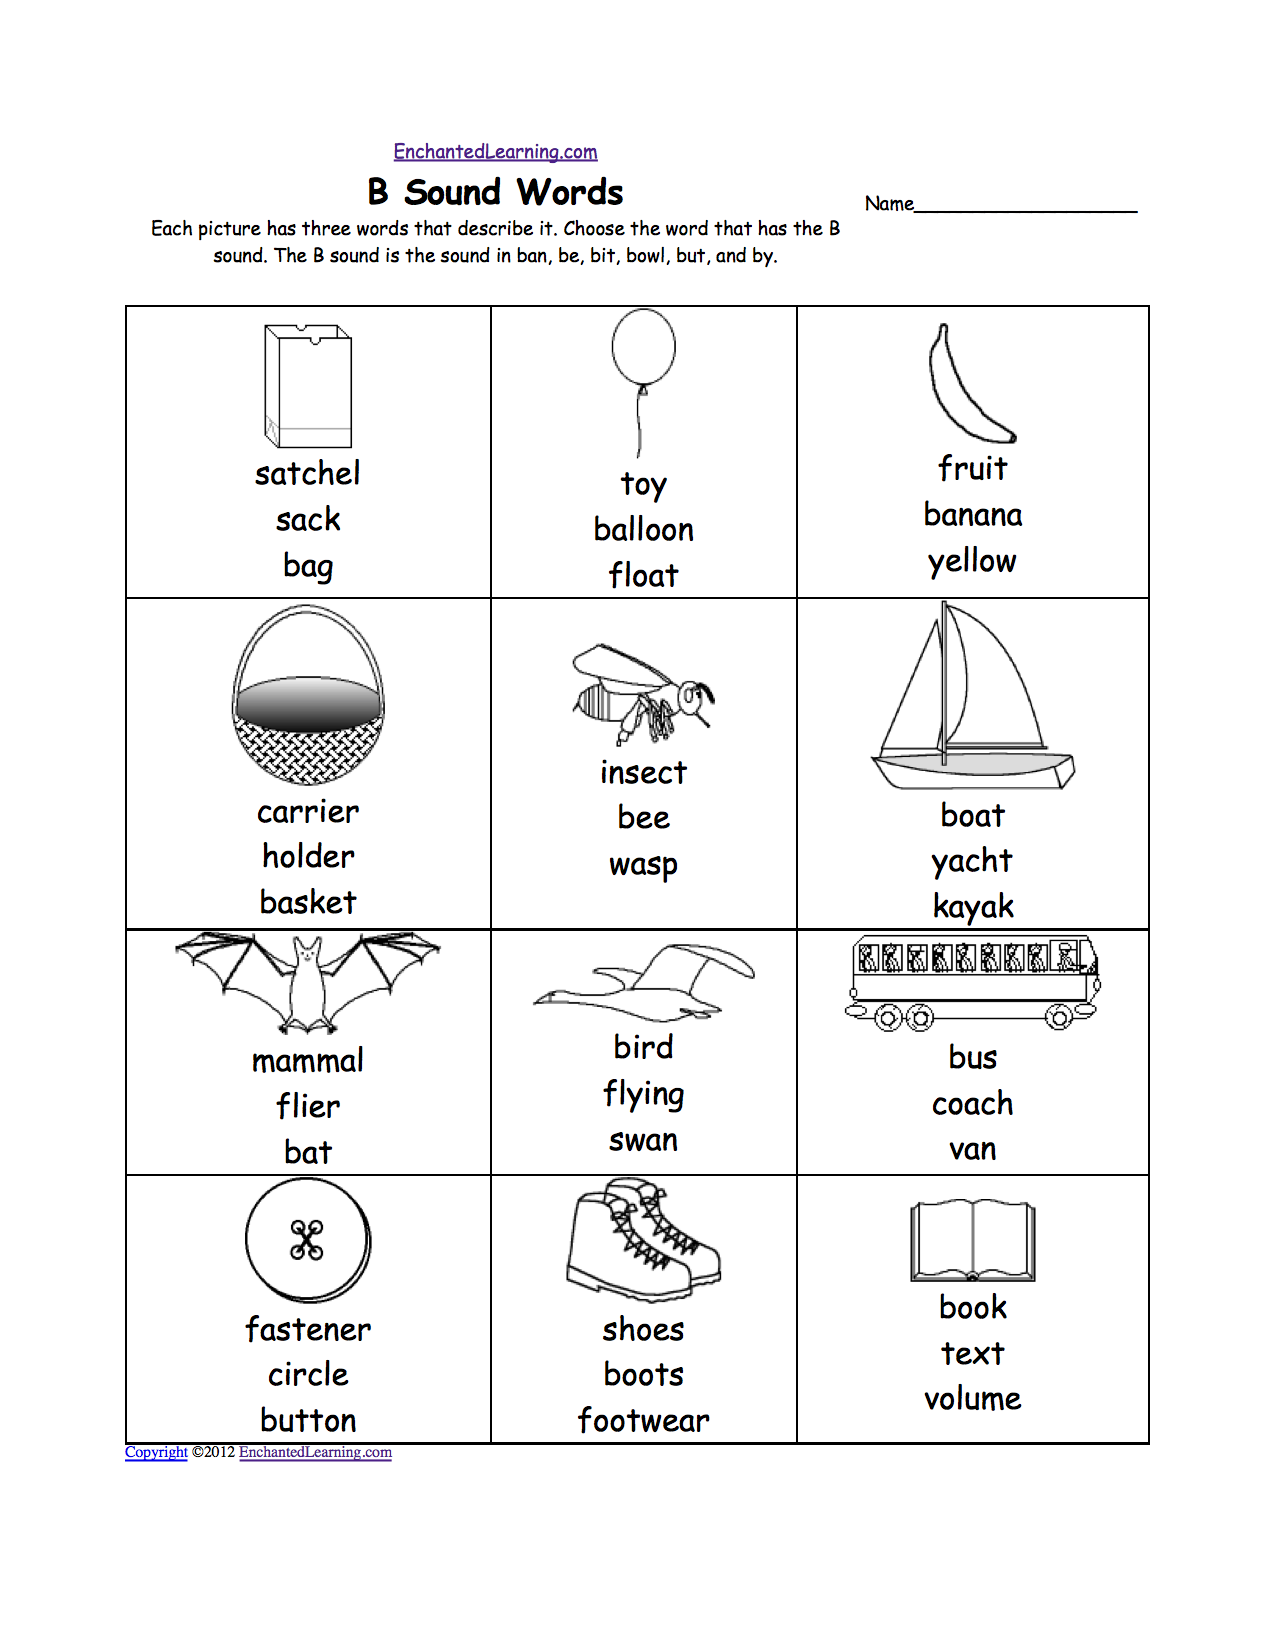 Proatmealus  Mesmerizing Phonics Worksheets Multiple Choice Worksheets To Print  With Goodlooking Quotbquot Sound Phonics Worksheet Multiple Choice Each Picture Has Three Words That Describe It Choose The Word That Has A Quotbquot Sound The Quotbquot Sound Is The Sound  With Easy On The Eye Plot Worksheets For Th Grade Also Main Idea Reading Comprehension Worksheets In Addition Label A Volcano Worksheet And Coin Worksheets For St Grade As Well As Past Tense Worksheet For Grade  Additionally Reduce Fraction Worksheet From Enchantedlearningcom With Proatmealus  Goodlooking Phonics Worksheets Multiple Choice Worksheets To Print  With Easy On The Eye Quotbquot Sound Phonics Worksheet Multiple Choice Each Picture Has Three Words That Describe It Choose The Word That Has A Quotbquot Sound The Quotbquot Sound Is The Sound  And Mesmerizing Plot Worksheets For Th Grade Also Main Idea Reading Comprehension Worksheets In Addition Label A Volcano Worksheet From Enchantedlearningcom